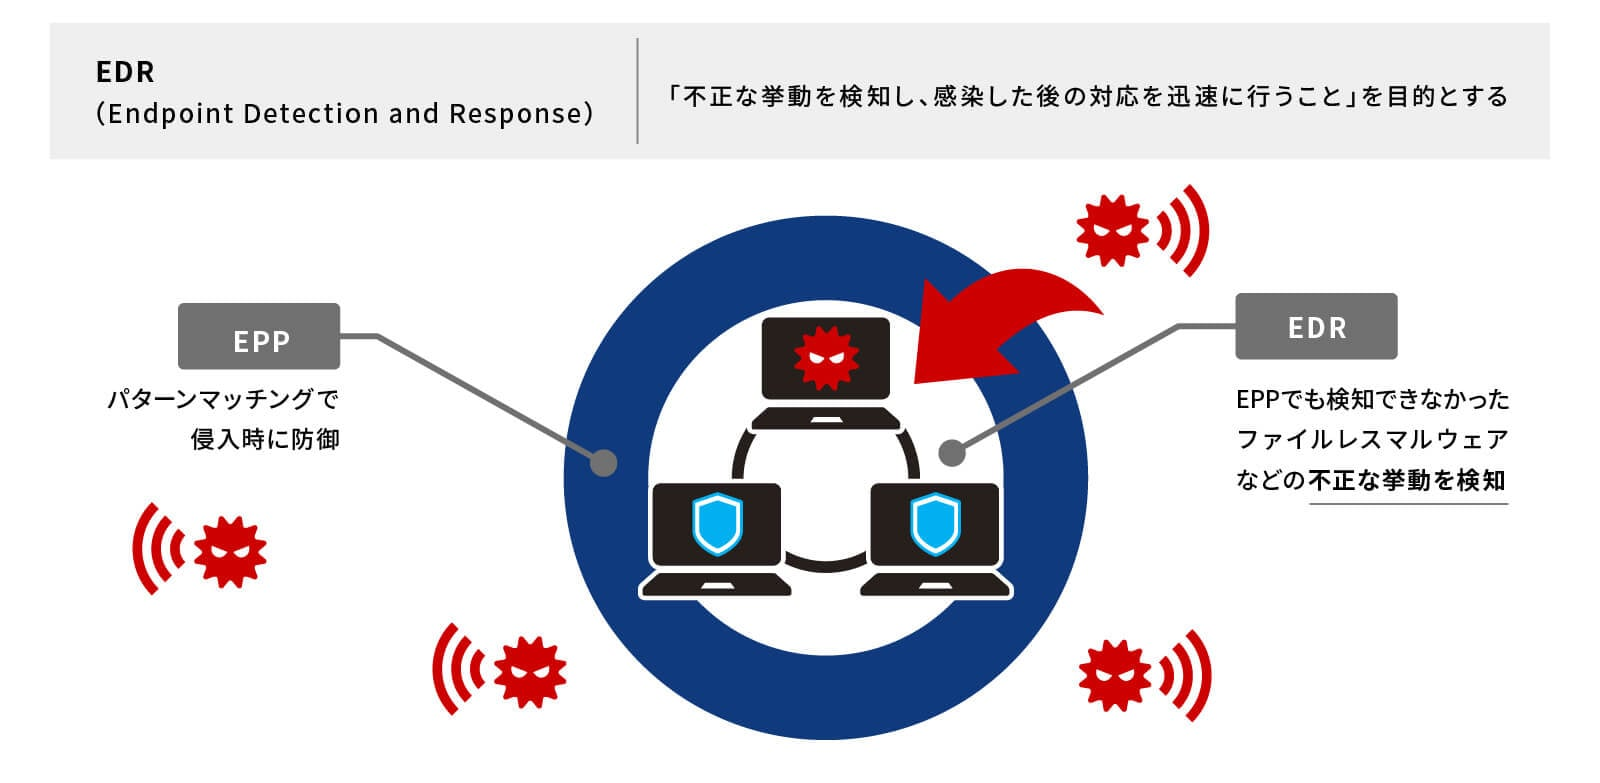 EDR(Endpoint Detection and Response)